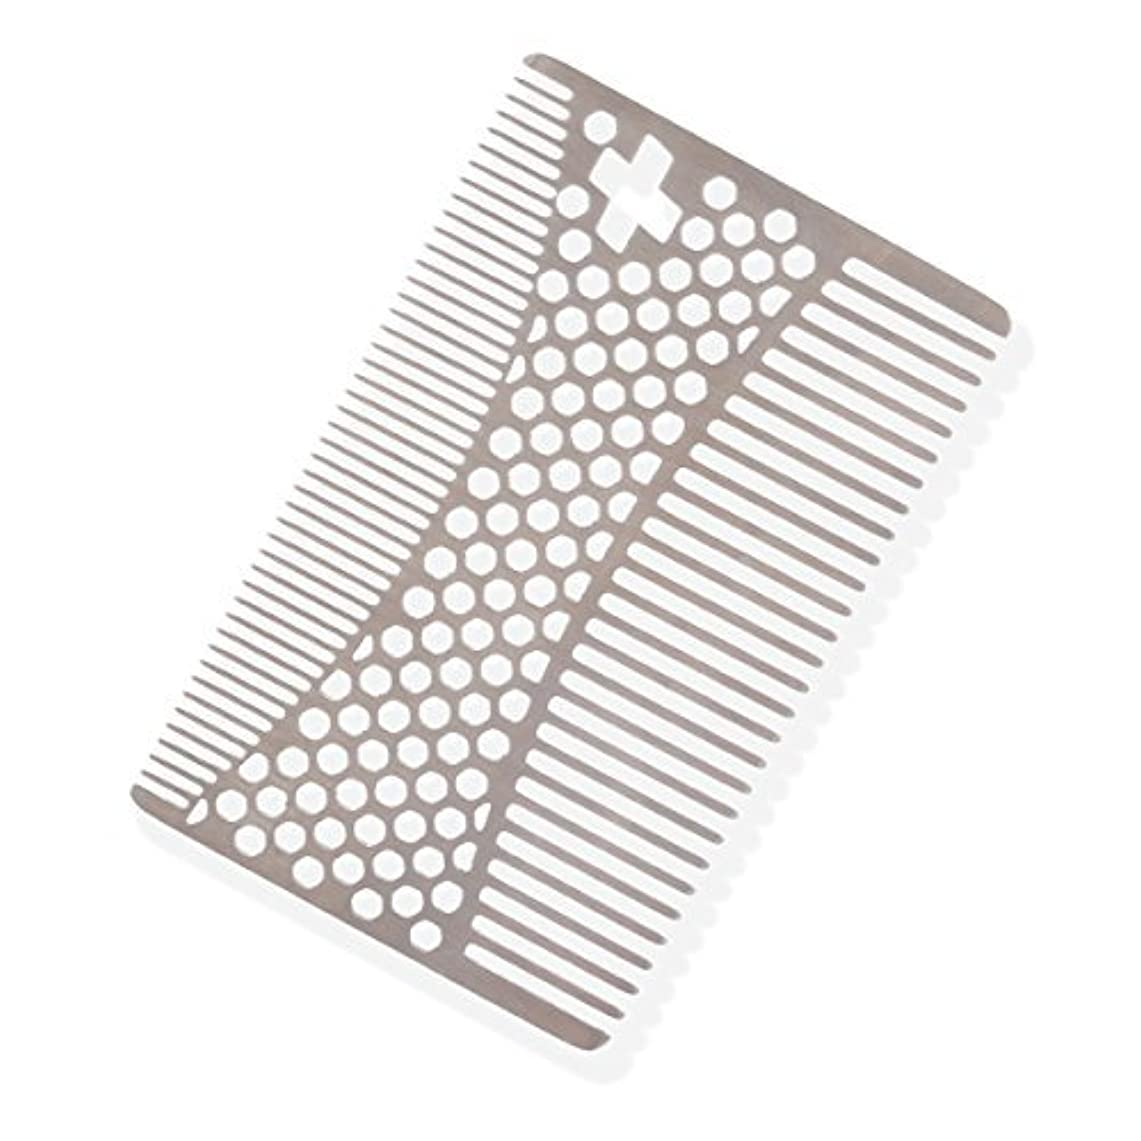 SHARPSWISS Credit Card Pocket Men Hair and Beard Comb Short - Stainless Steel [並行輸入品]